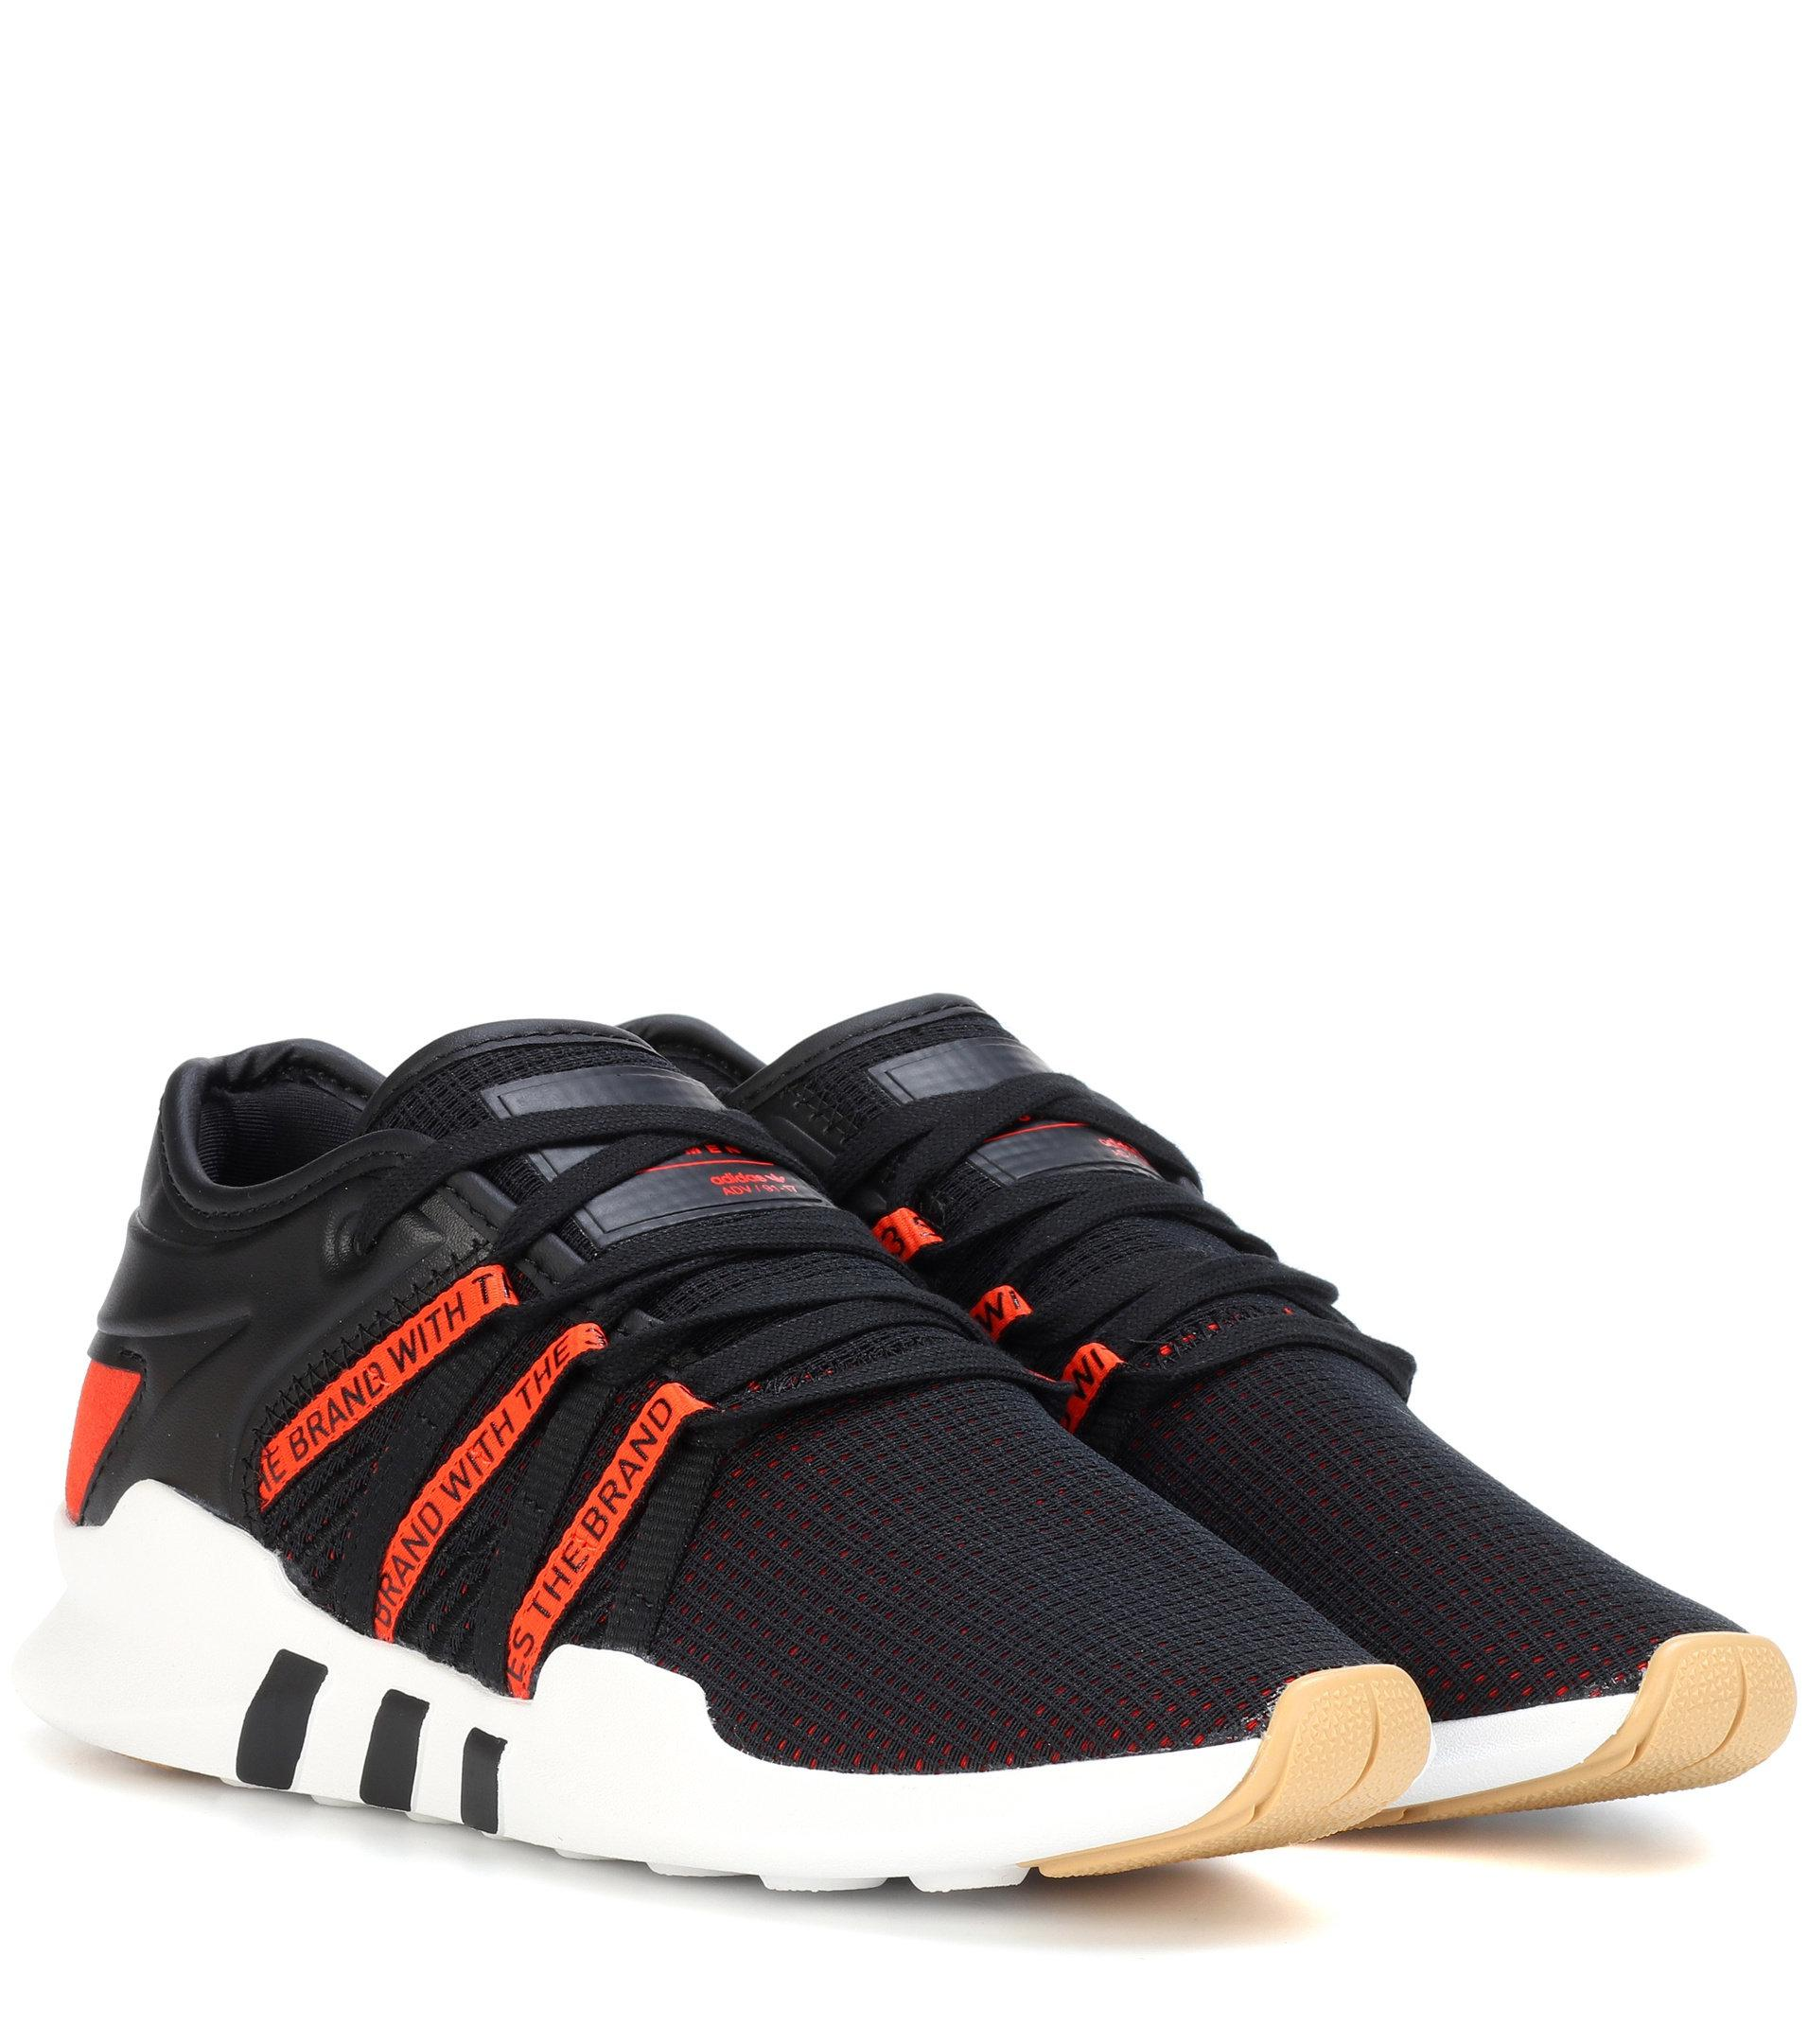 adidas originals eqt racing adv sneakers in black and white